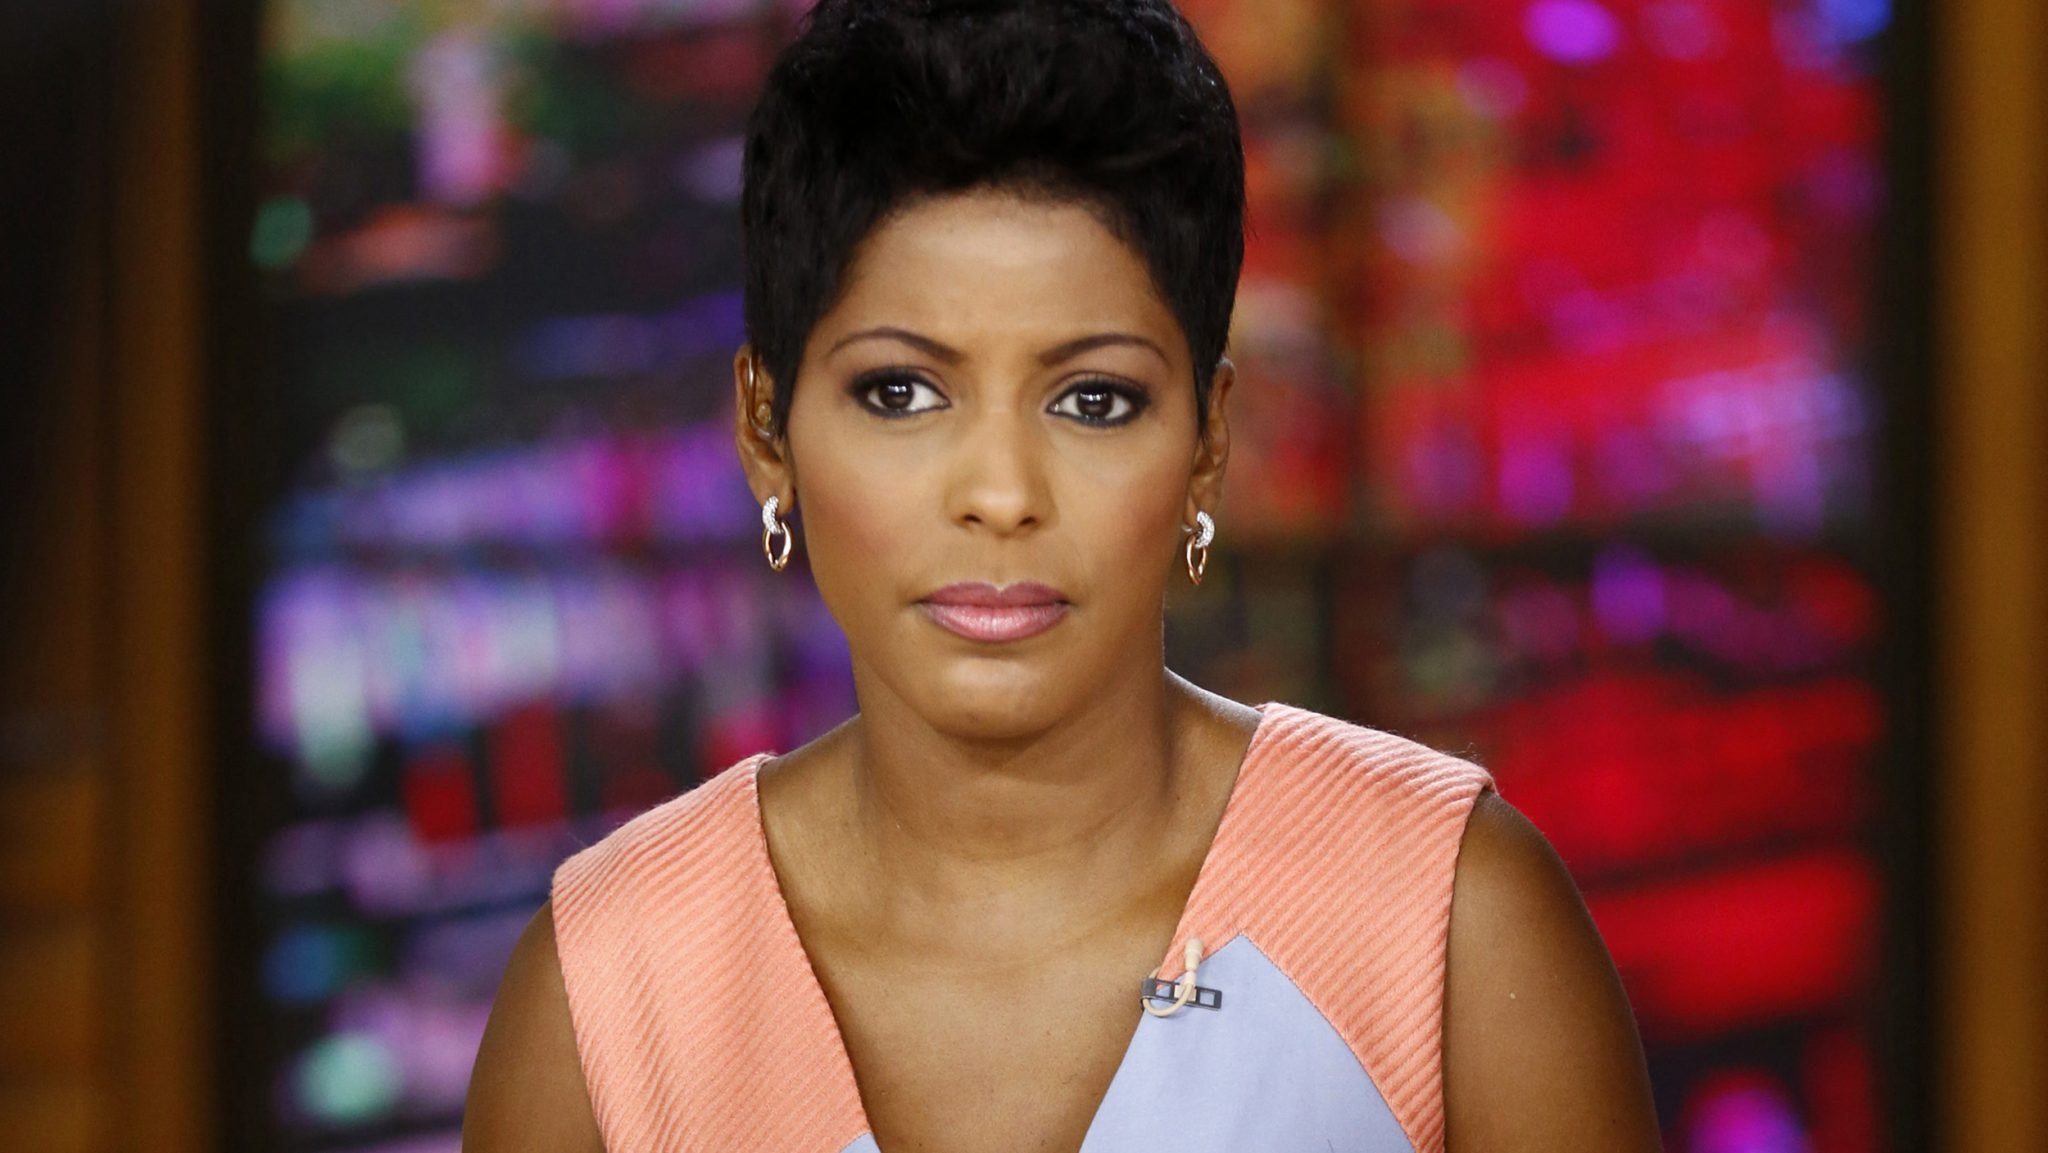 tamron hall returning to tv with oprah style talk show